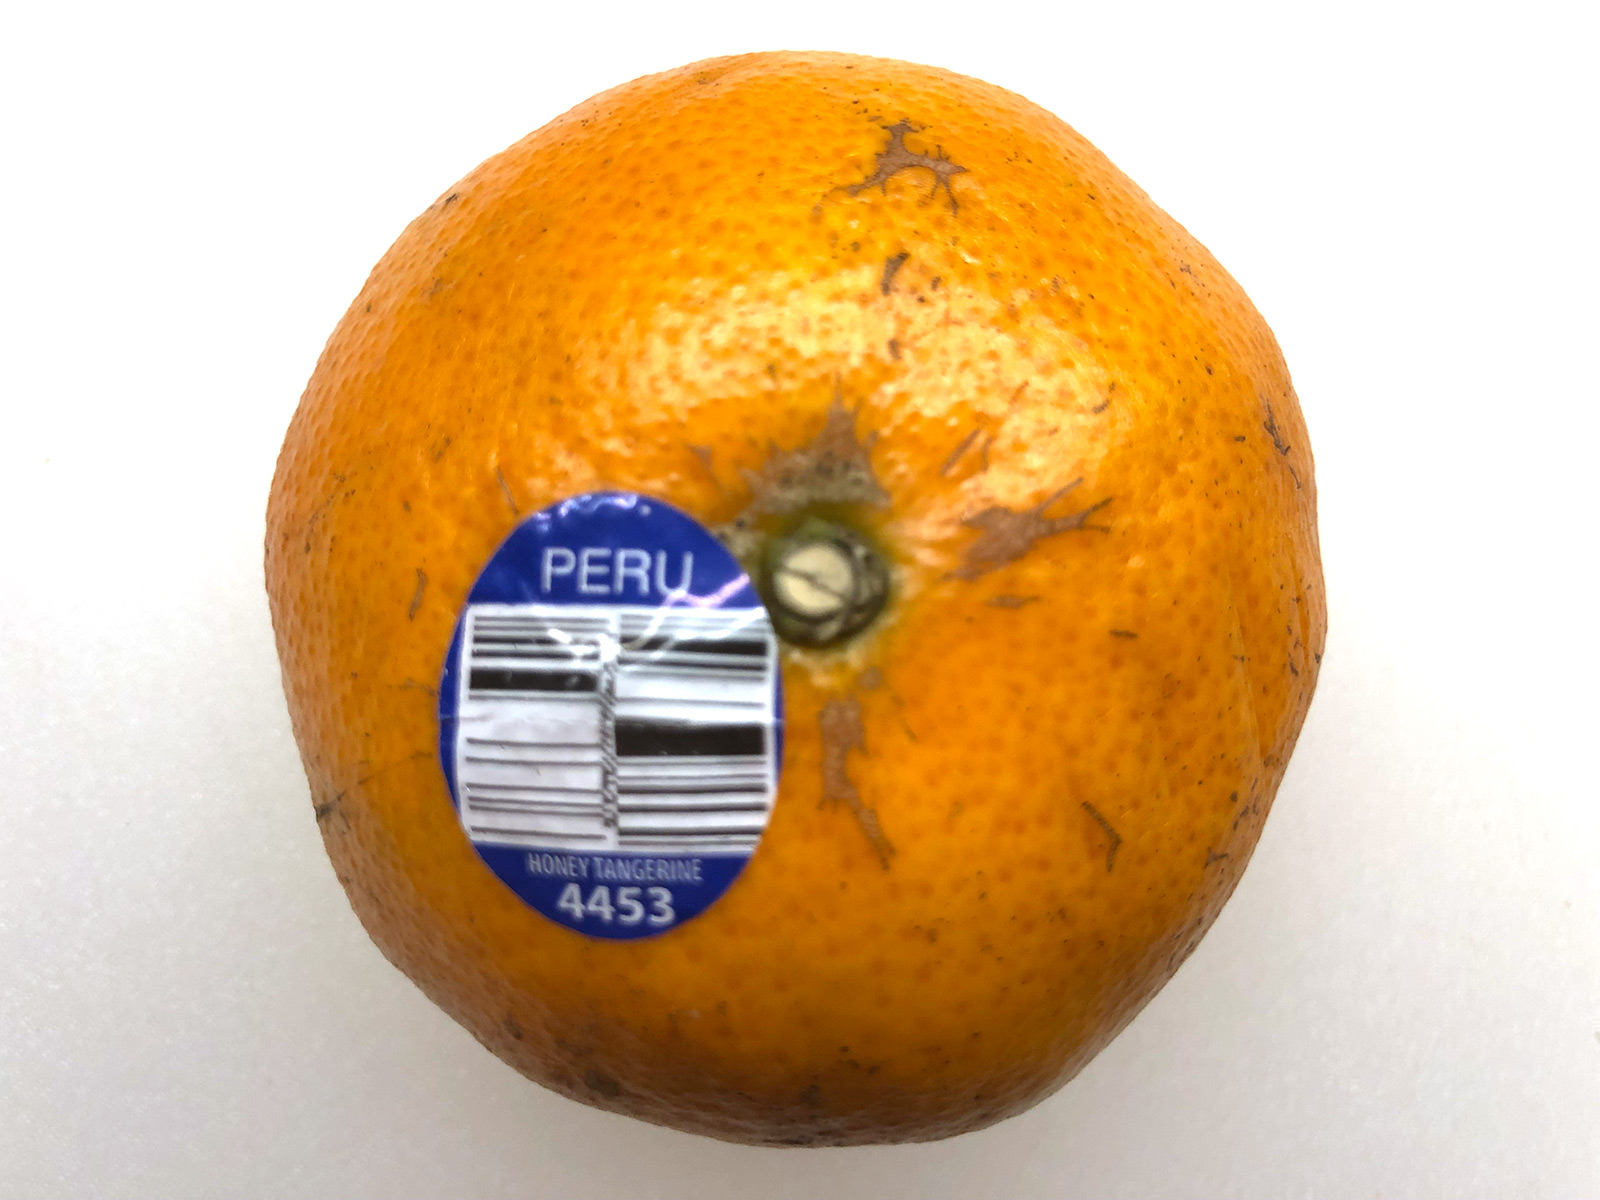 4453-peru-honey-tangerine.jpg